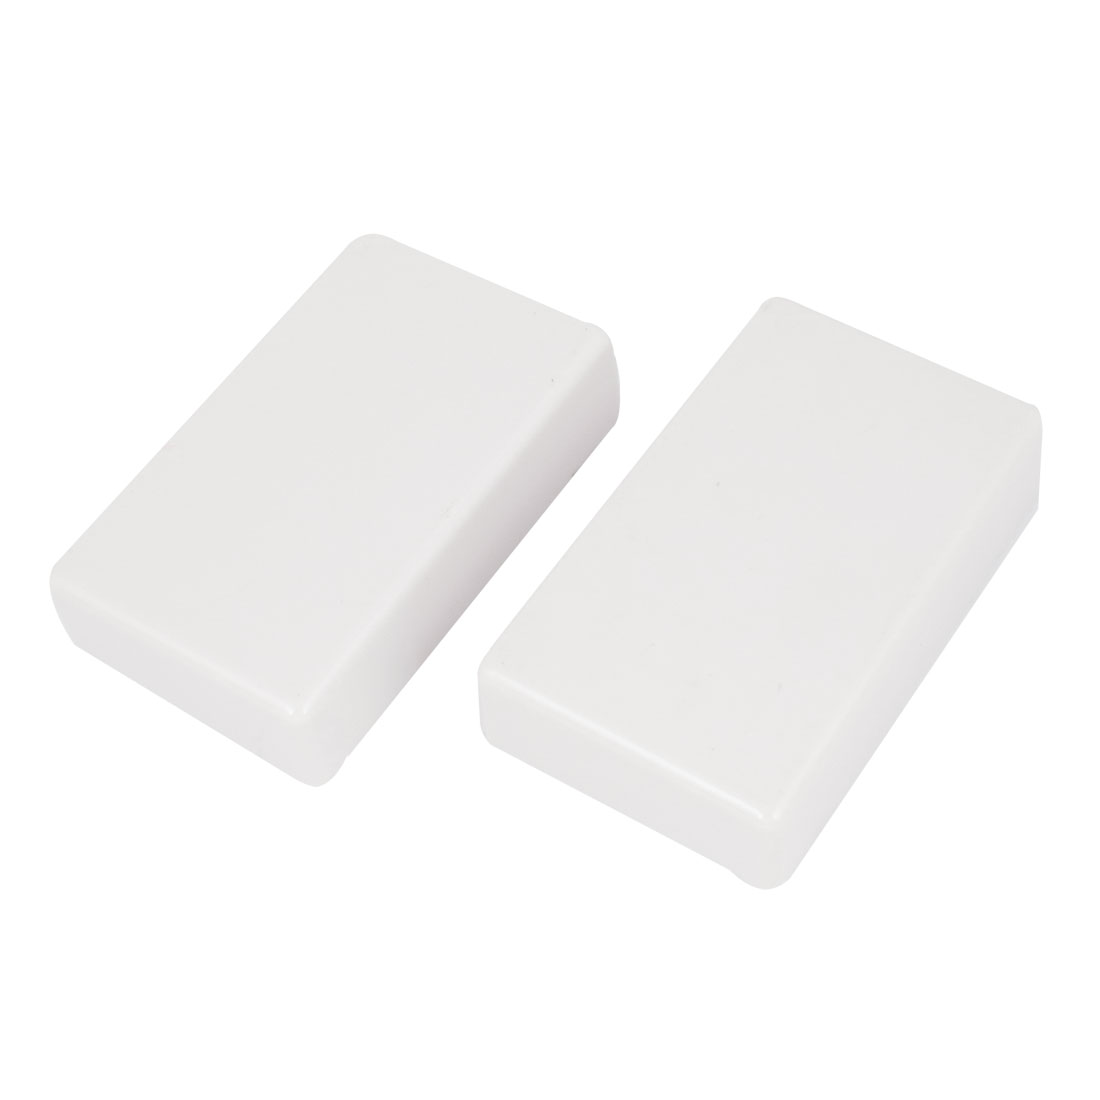 2 Pcs Sealed Plastic Enclosure Electronic Switch Junction Box Case 100 x 59 x 26mm